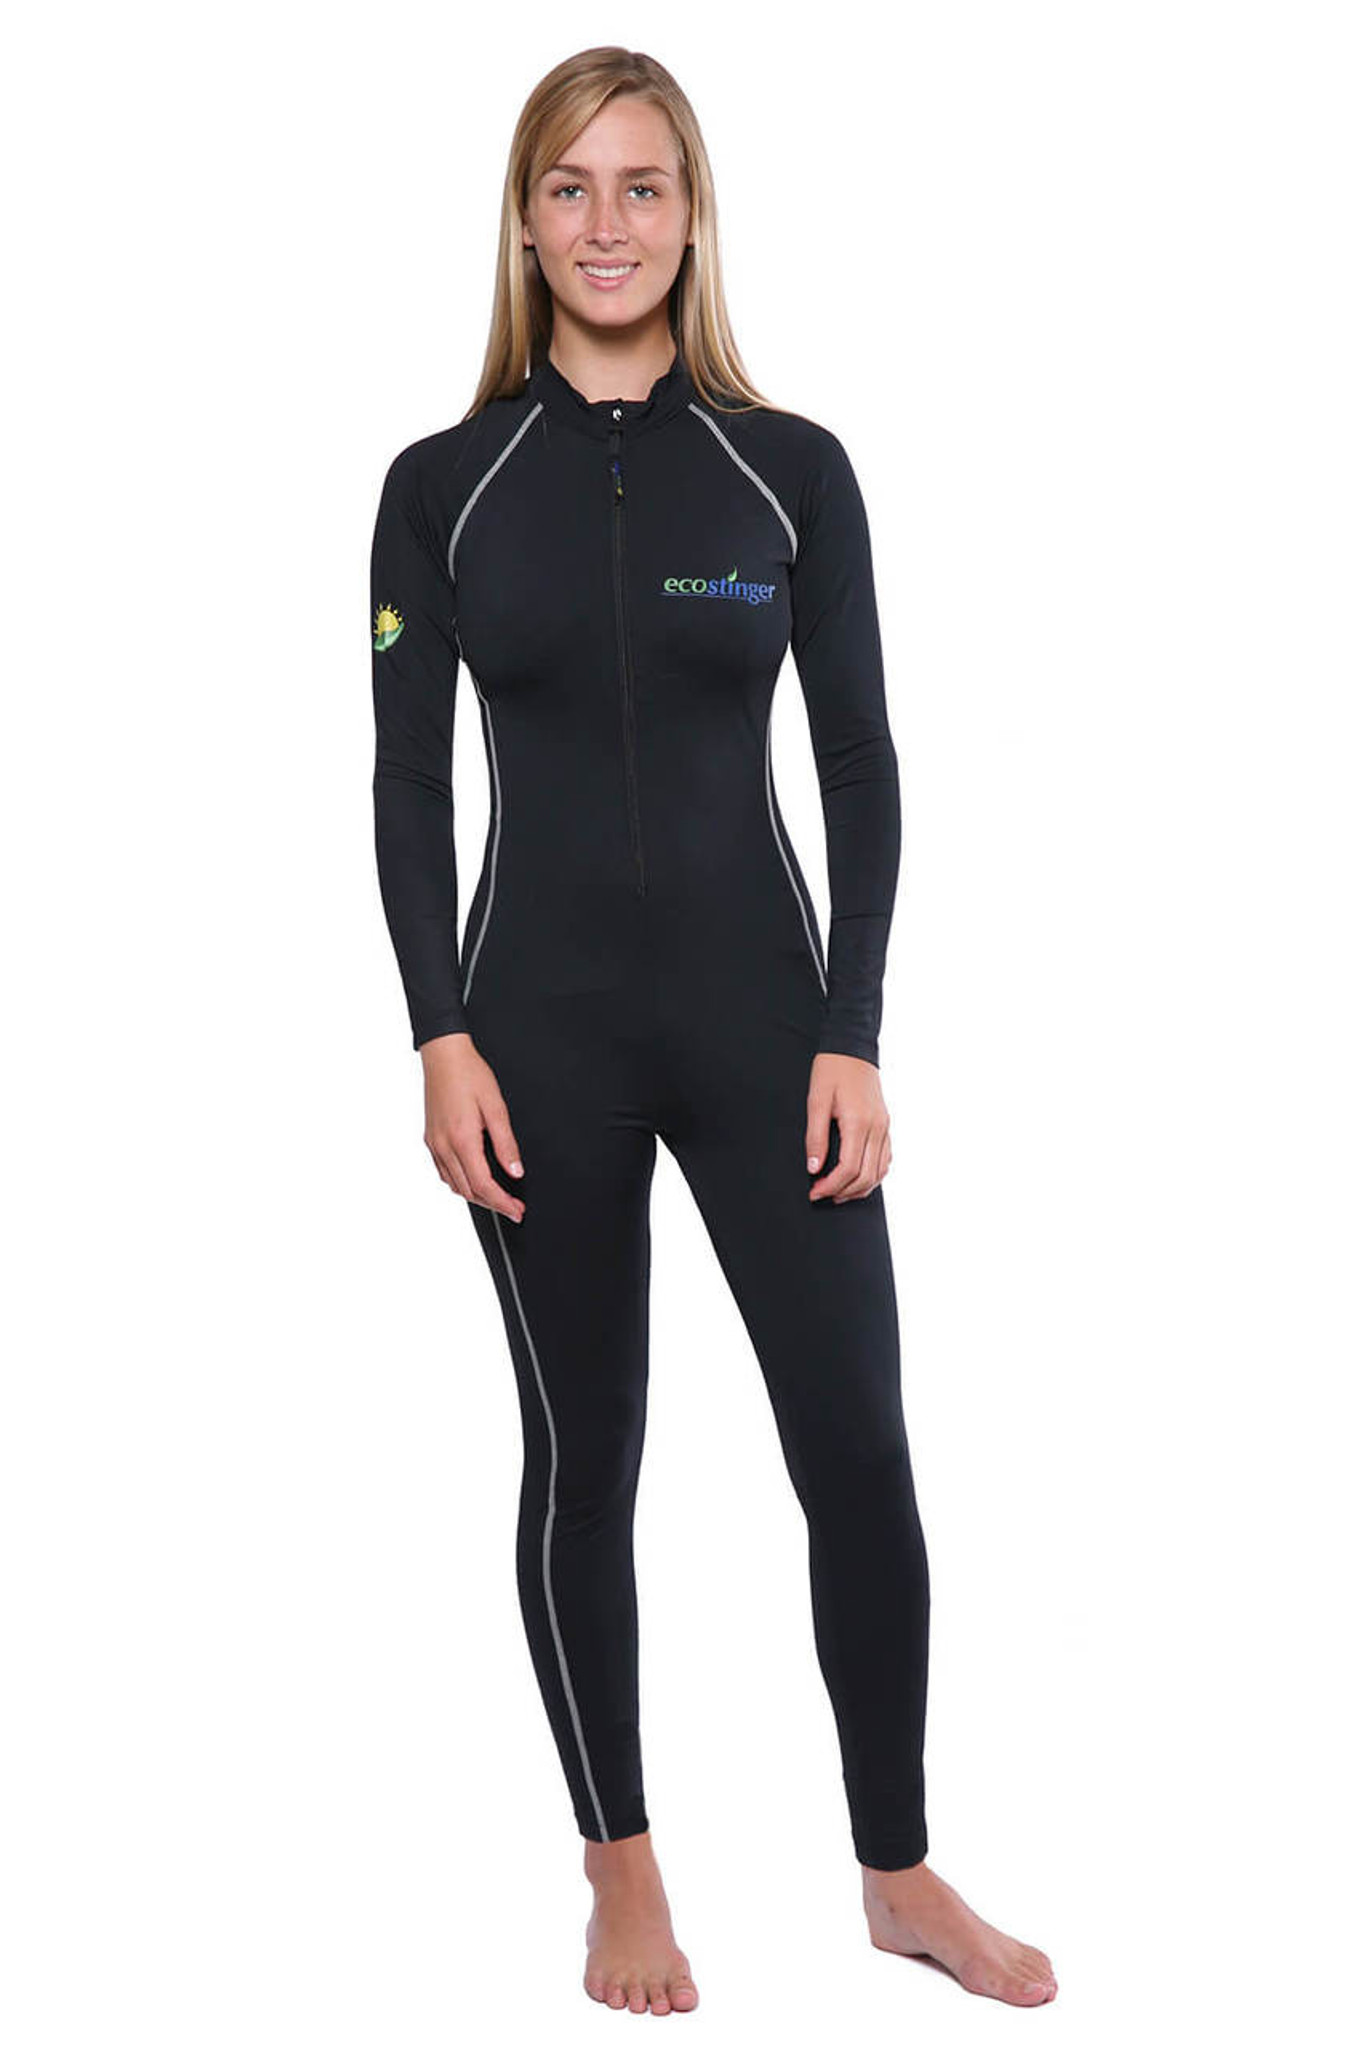 4bb614b89c4 Women UV Swimsuit With Full Body Lining UPF50+ Protection (Chlorine  Resistant)